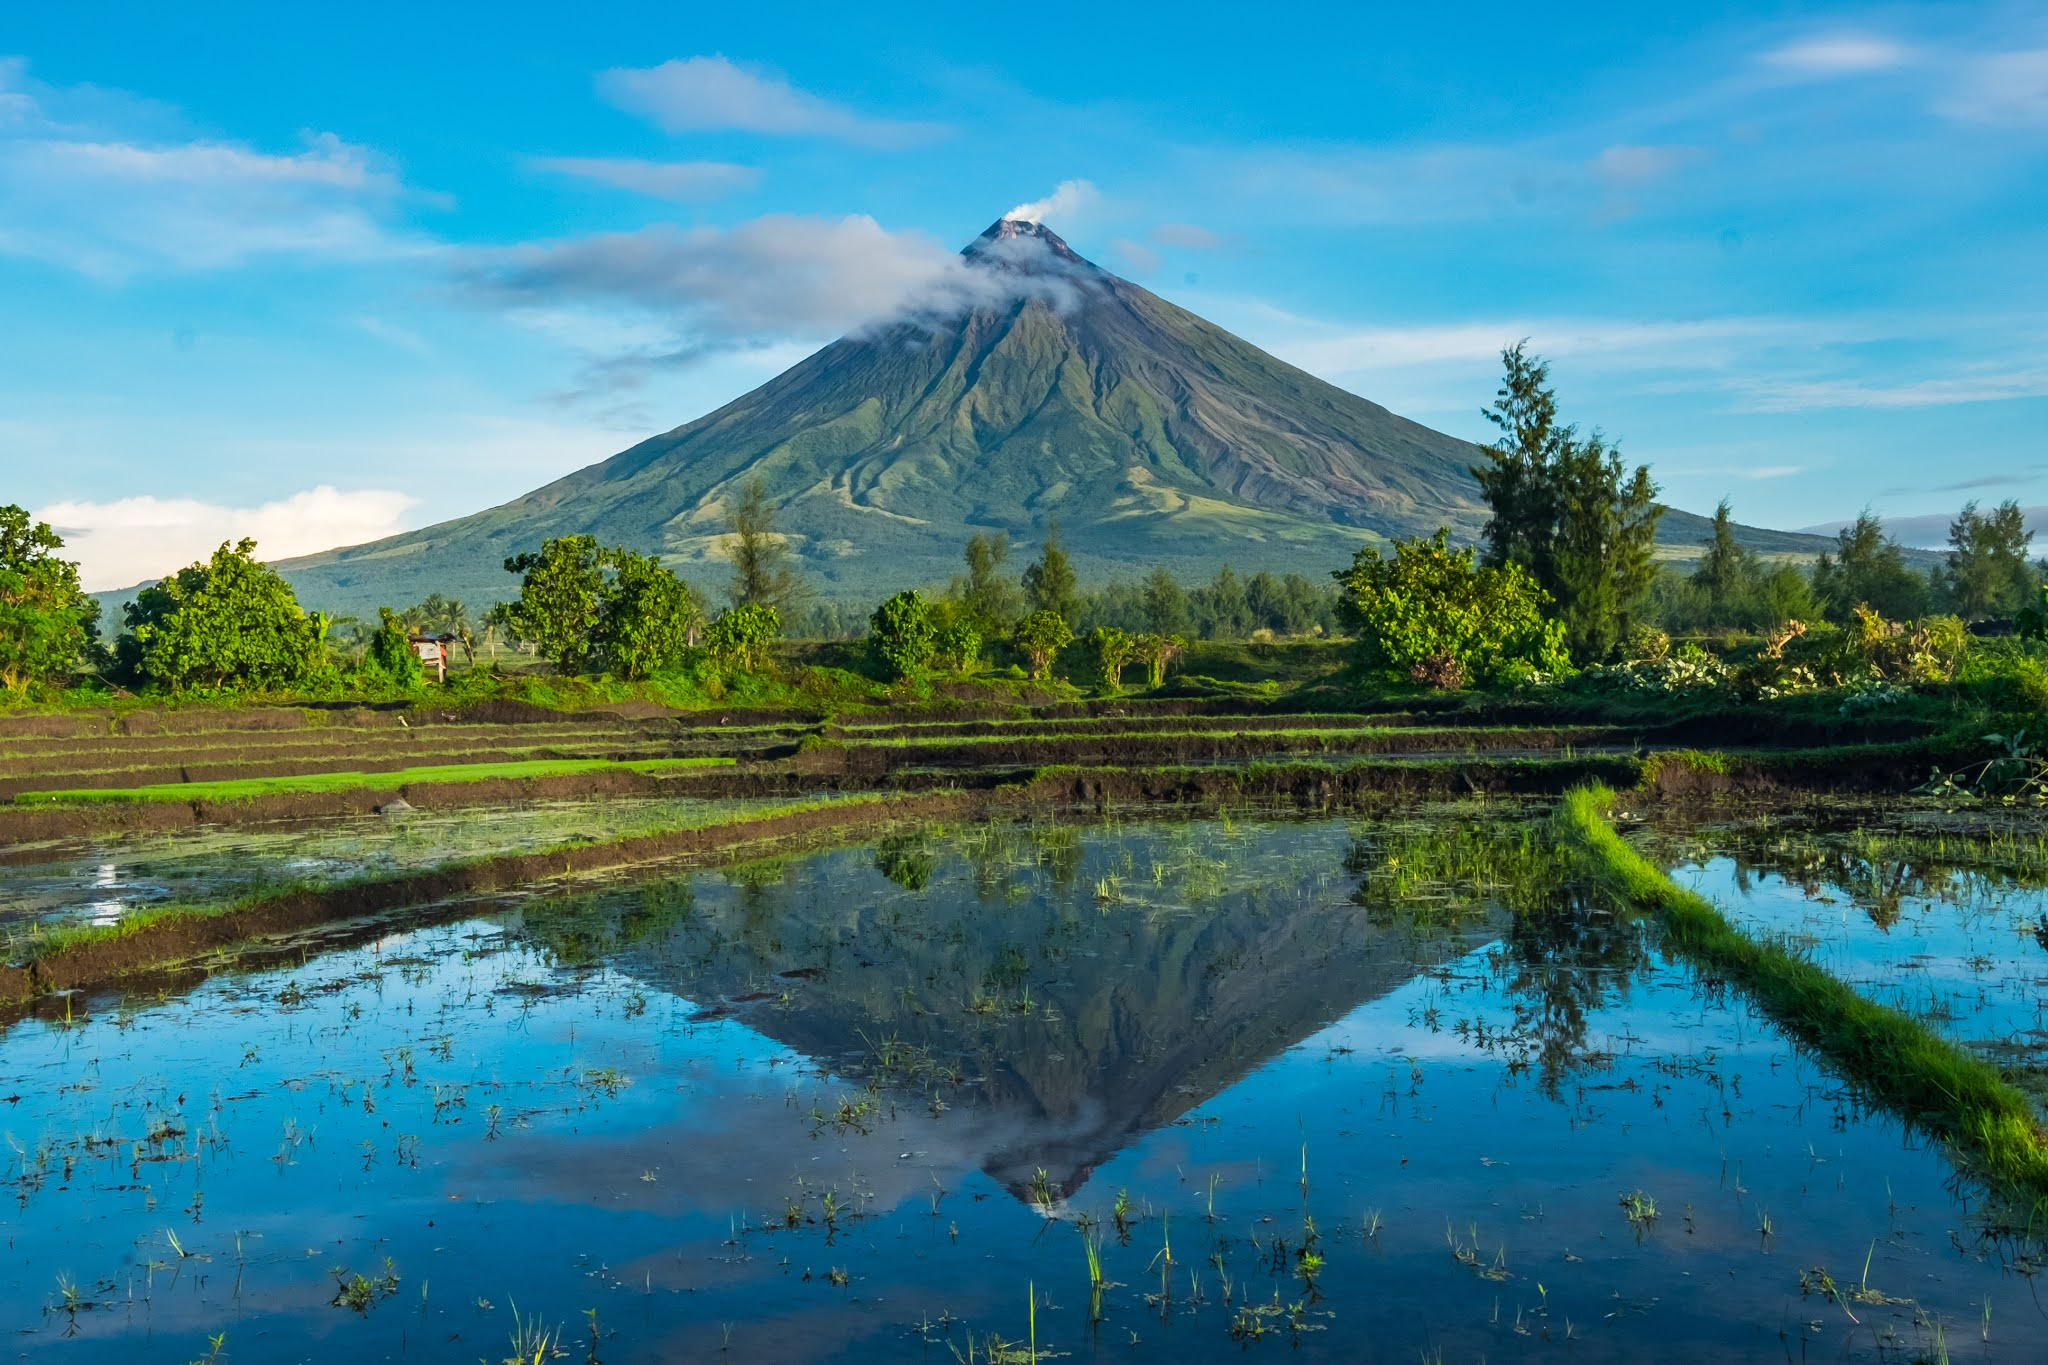 The reflection of Mayon Volcano in the water